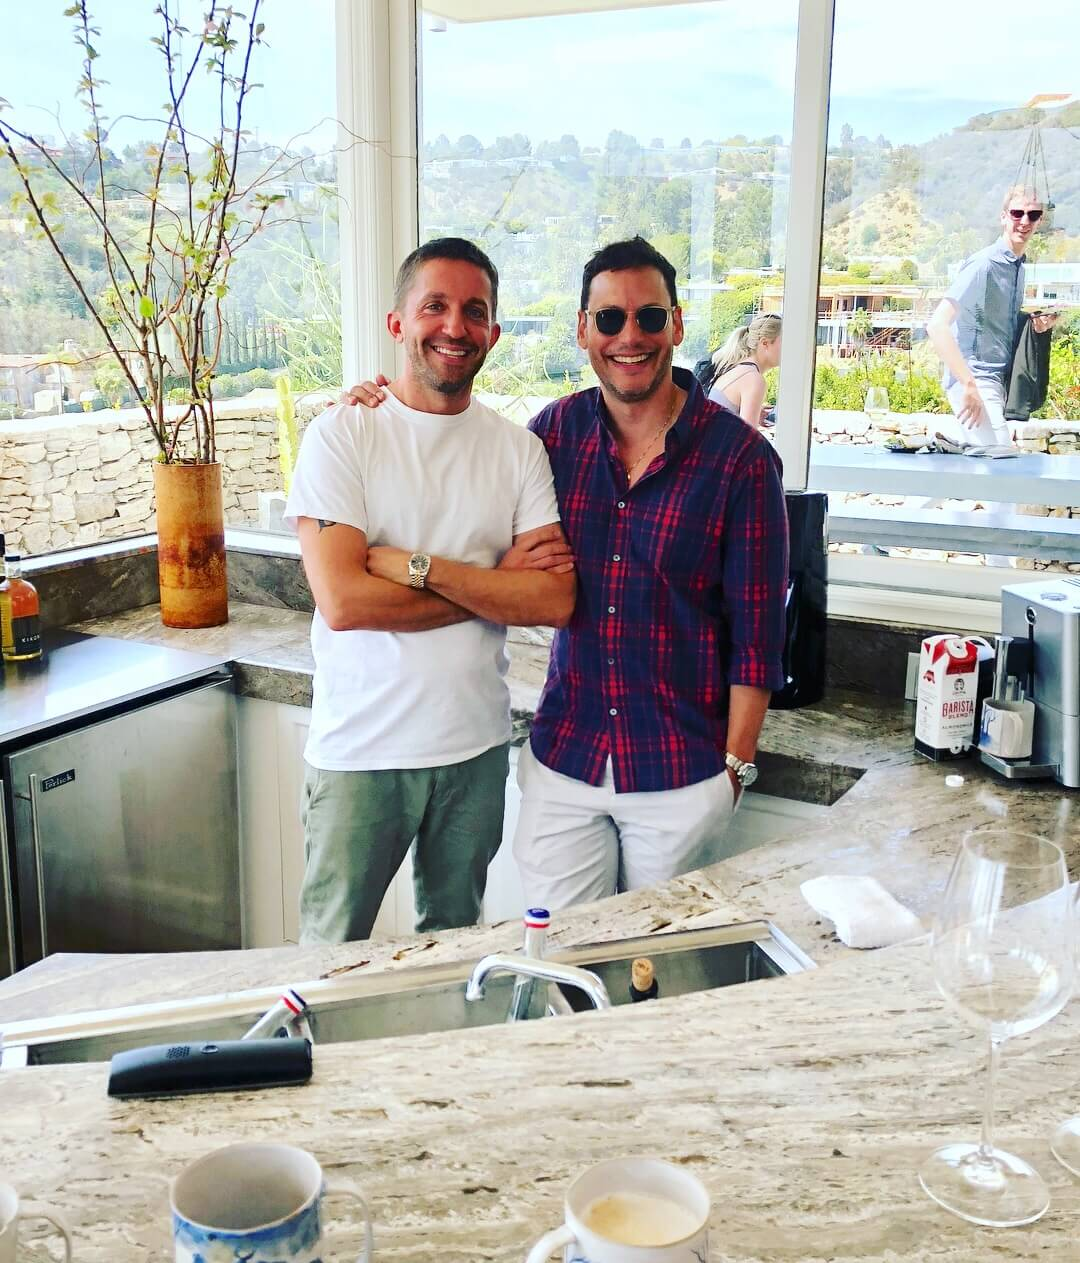 The creative entrepeneur, David Alhadeff and his partner, were our gracious hosts at Casa Perfect. #bar #sunkenbar #midcenturymodern